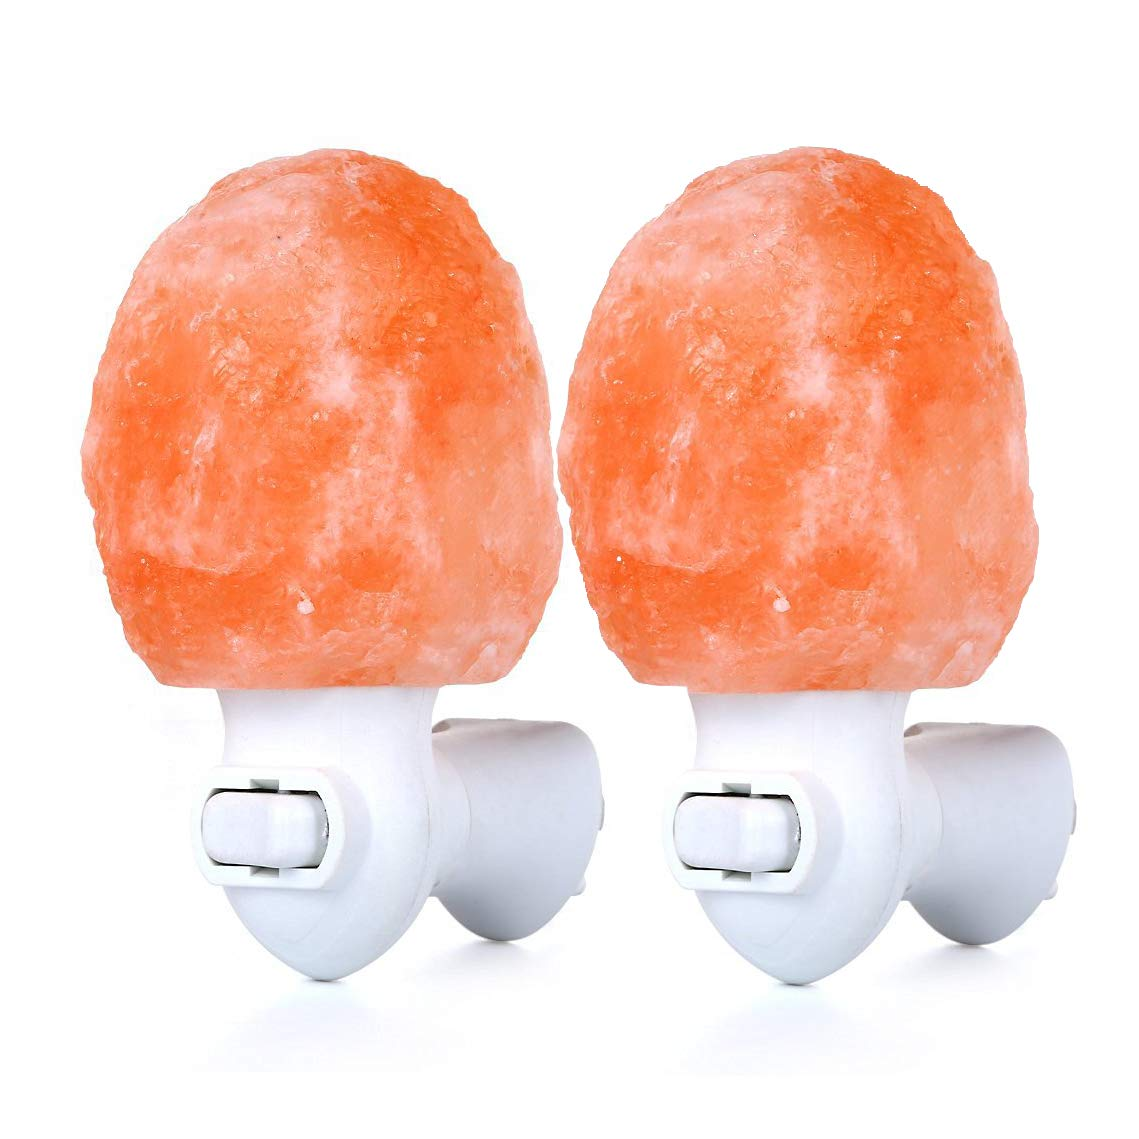 (Pack of 2) Zoostliss Mini Hand Carved Natural Original Crystal Himalayan Salt Lamp Night Light with Additional Bulb for Backup by Zoostliss (Image #1)